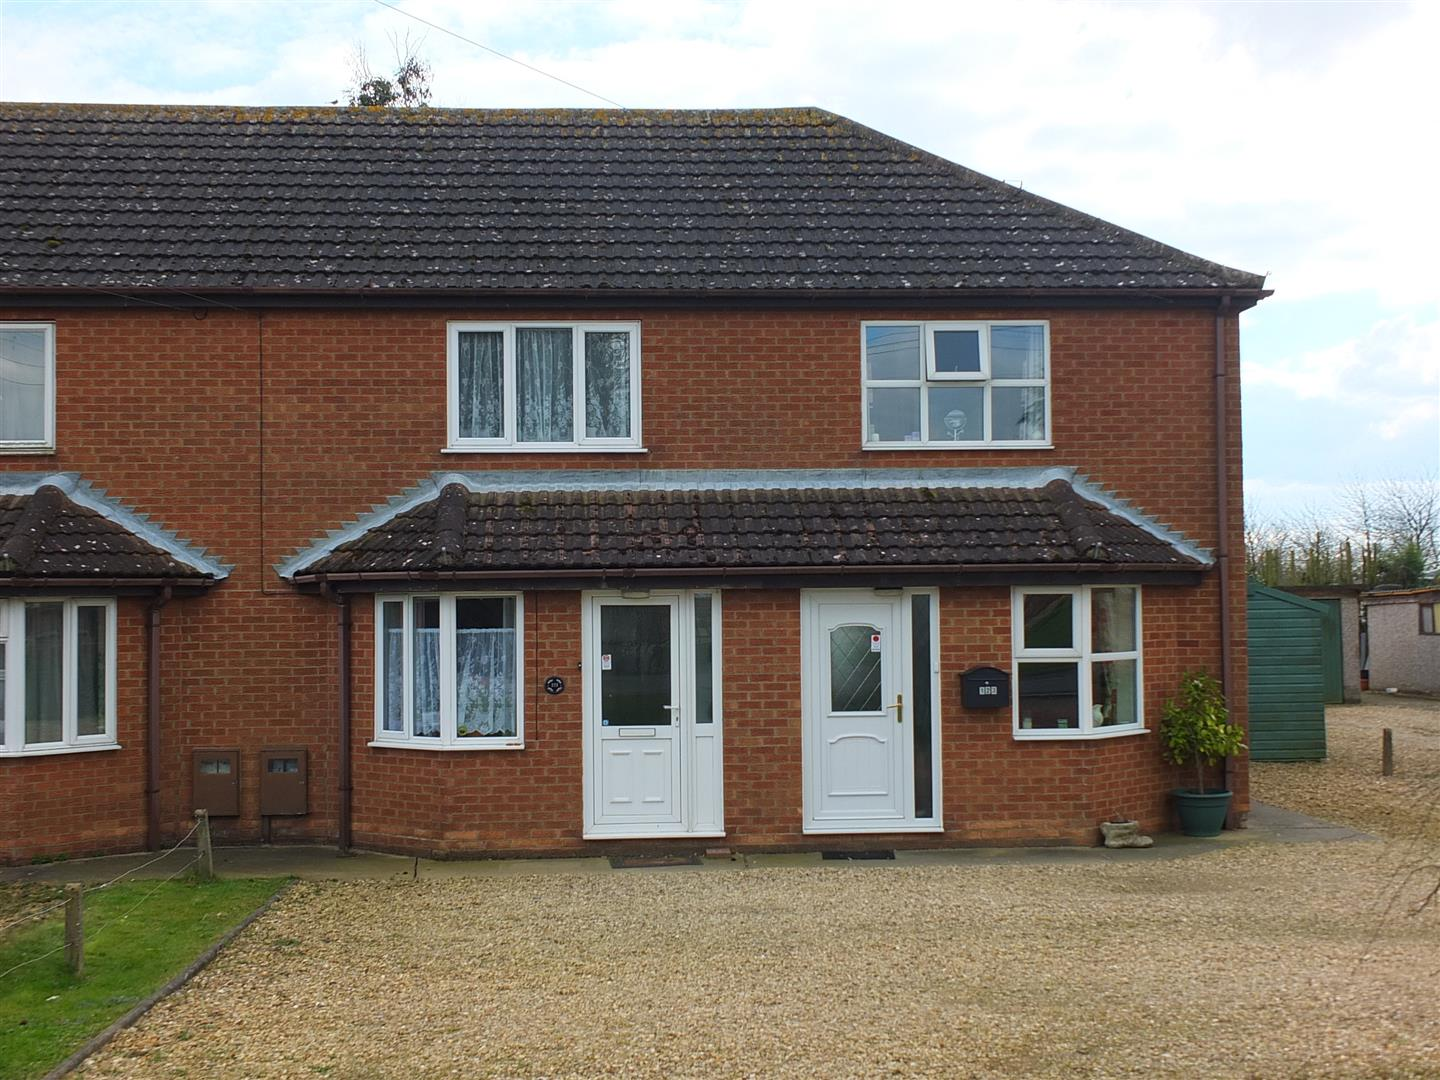 2 bed house to rent in Chapelgate, Spalding, PE12